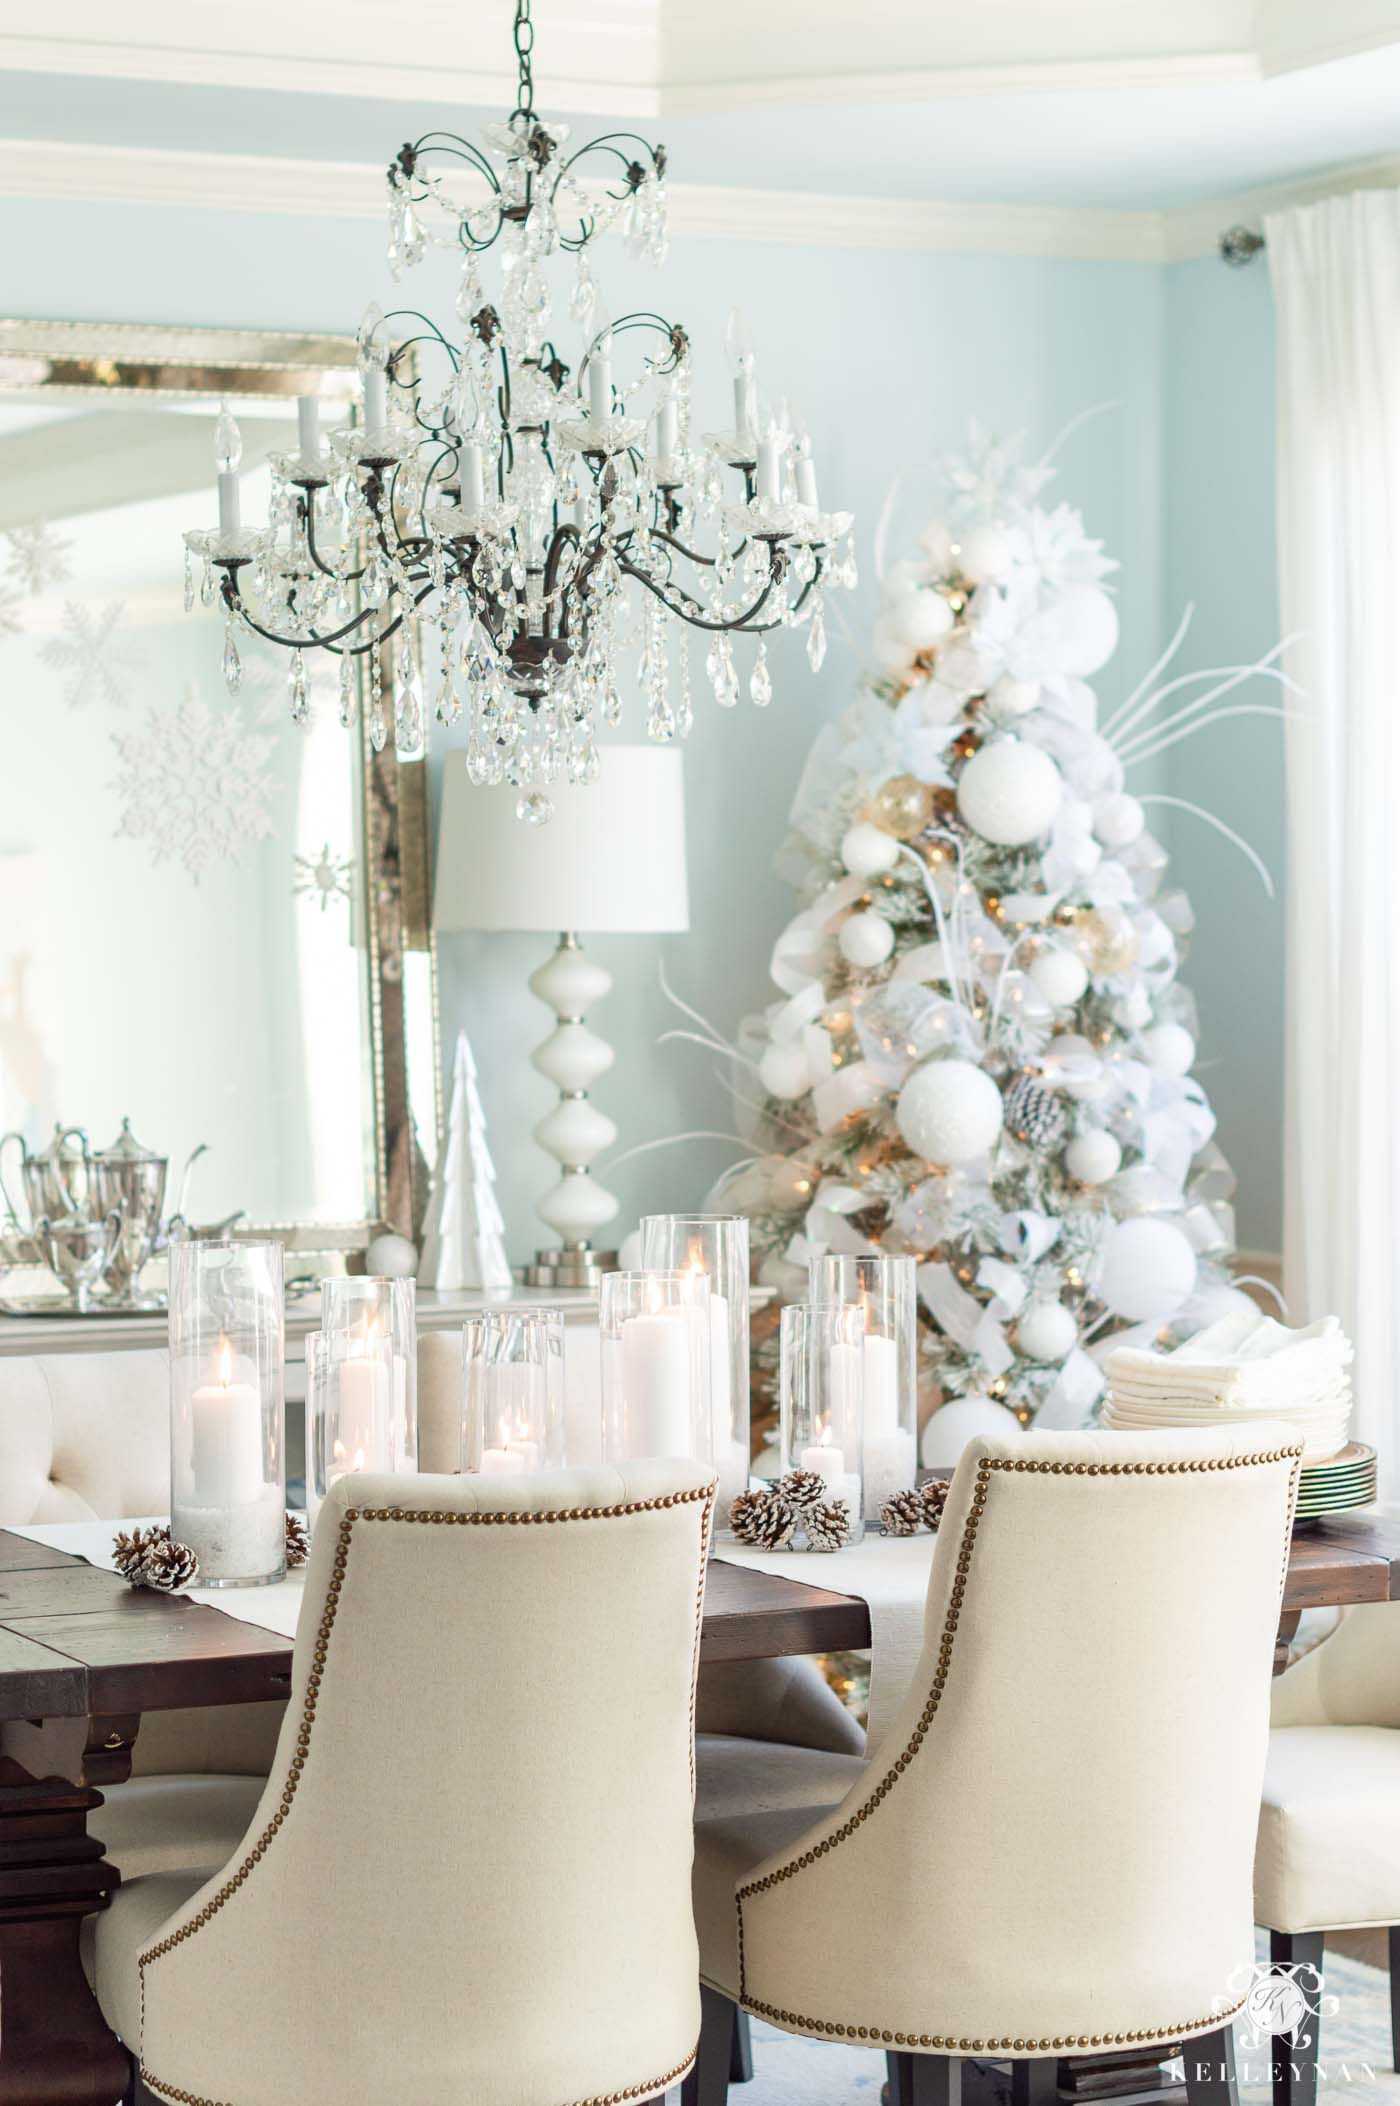 Snowy White and Icy Blue Dining Room Christmas Decor